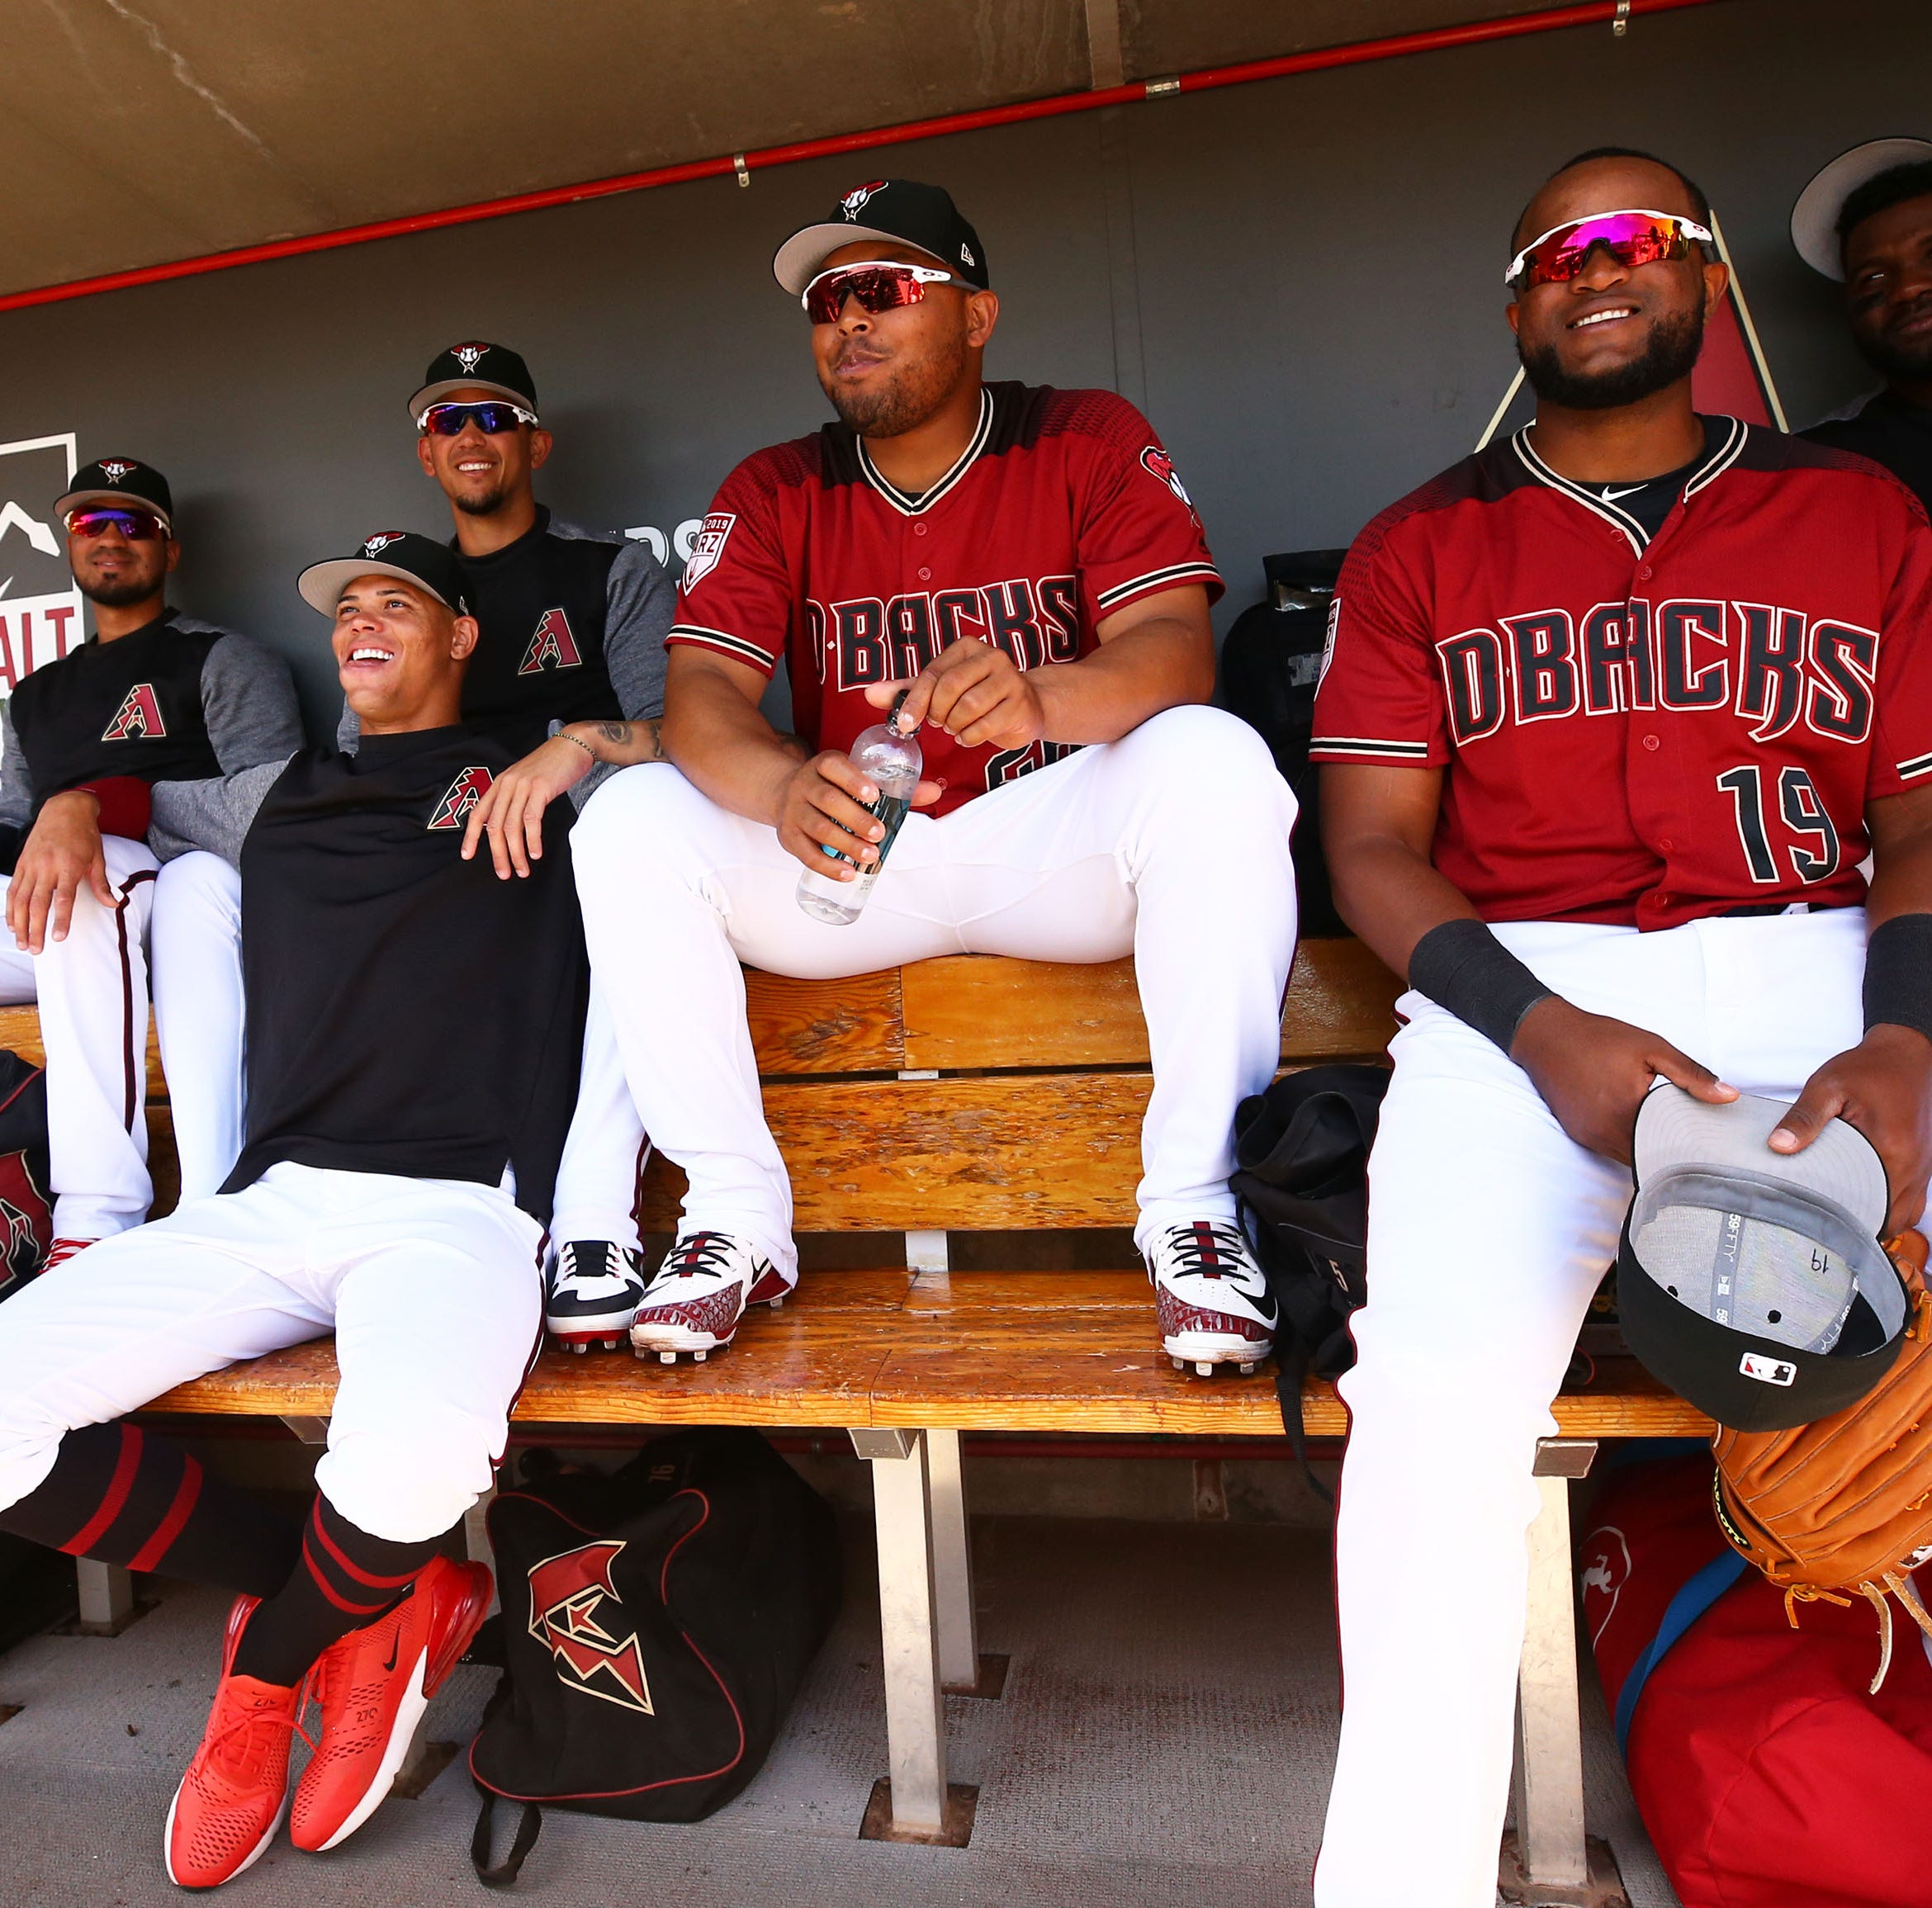 Meet the new guys: Diamondbacks stay loose with Adam Sandler quotes, pranks